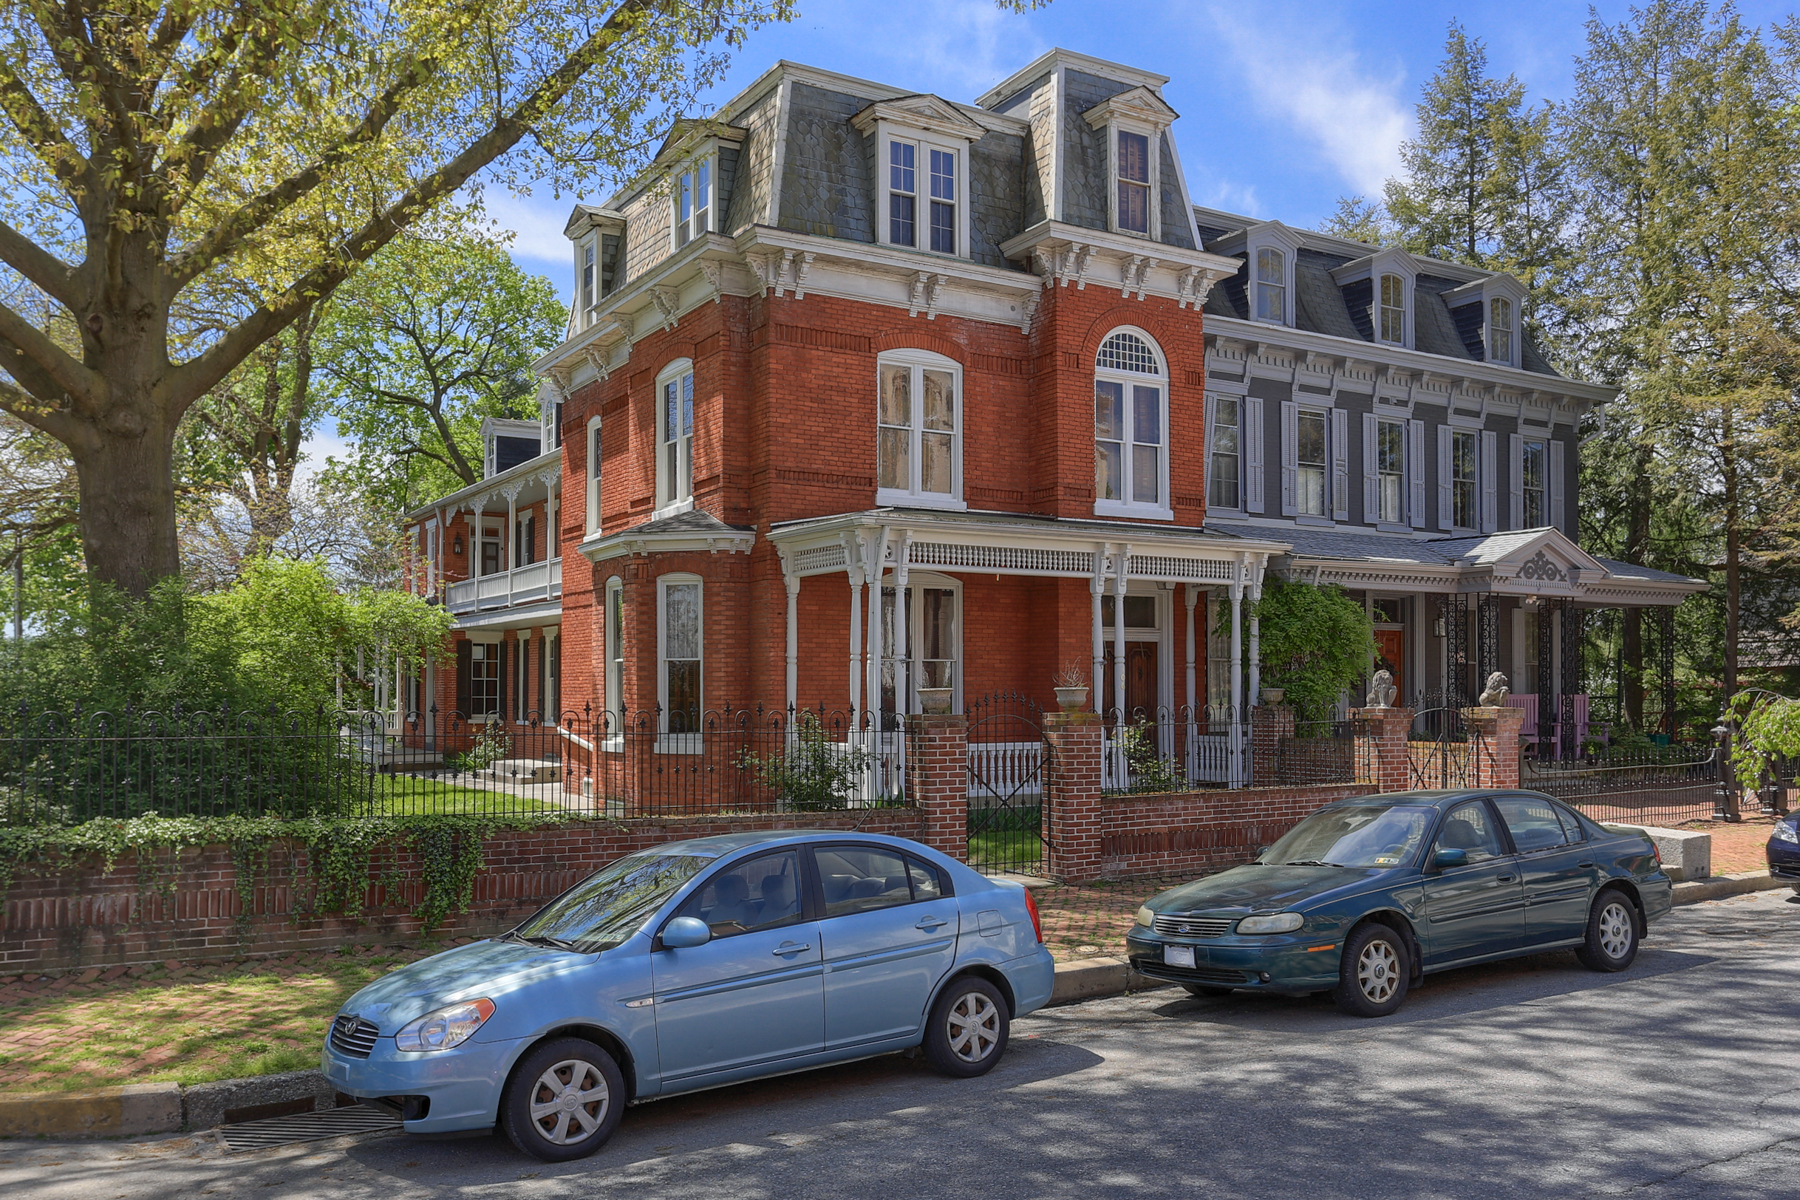 Casa Unifamiliar por un Venta en 106 South 2nd Street 106 South Second Street Columbia, Pennsylvania 17512 Estados Unidos